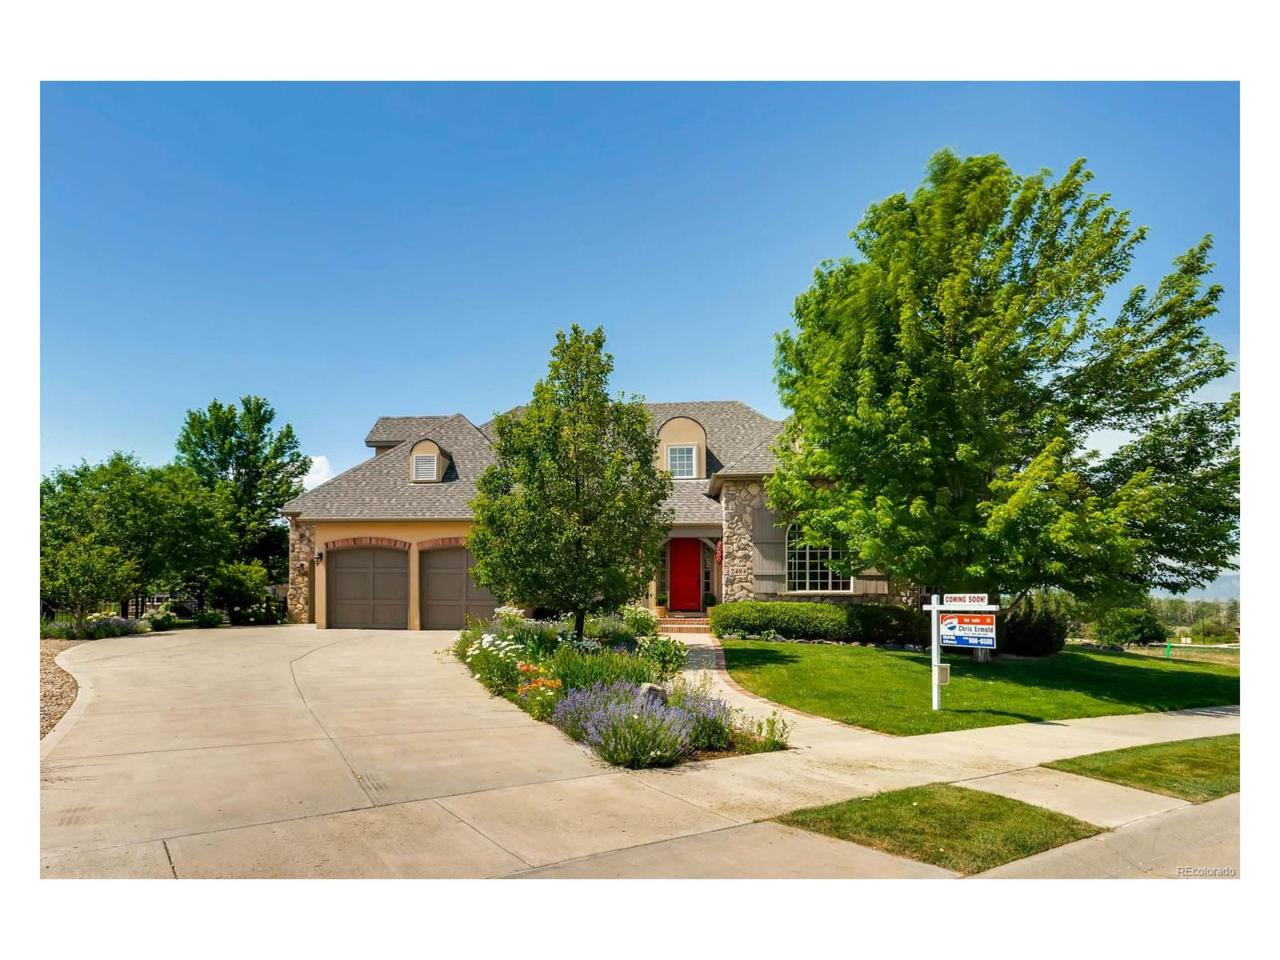 2484 Walters Drive, Erie, CO 80516 (MLS #8453124) :: 8z Real Estate